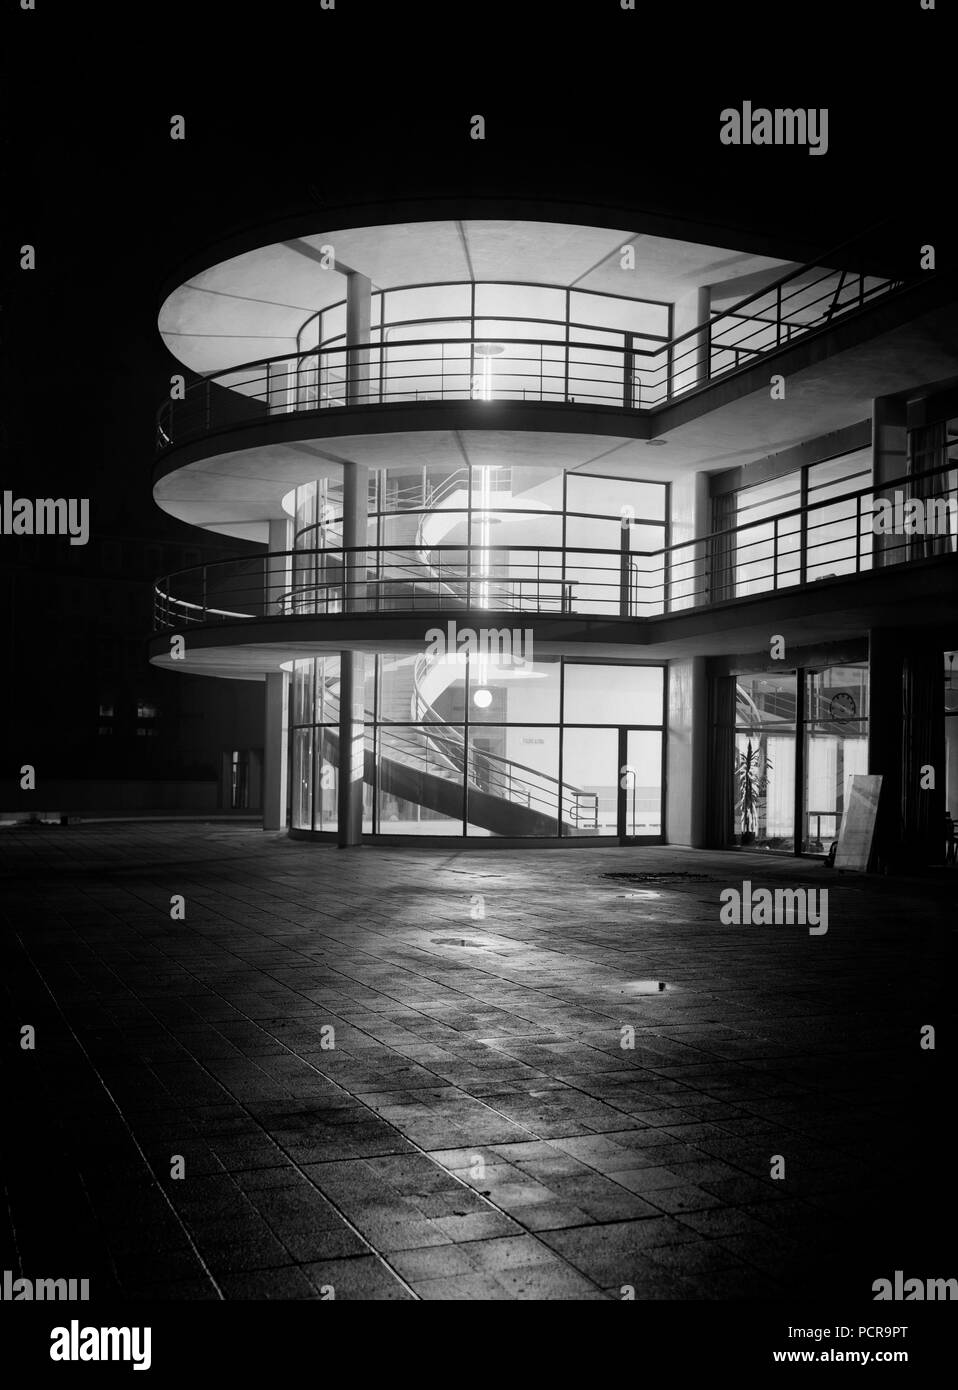 De La Warr Pavilion, Bexhill on Sea, East Sussex, 1935. The Art Deco Pavilion at night with interior lighting, photographed shortly after the building's completion. The building was designed by Erich Mendelsohn and Serge Chermayeff as the result of an architectural competition organised by Herbrand Sackville, 9th Earl De La Warr. - Stock Image